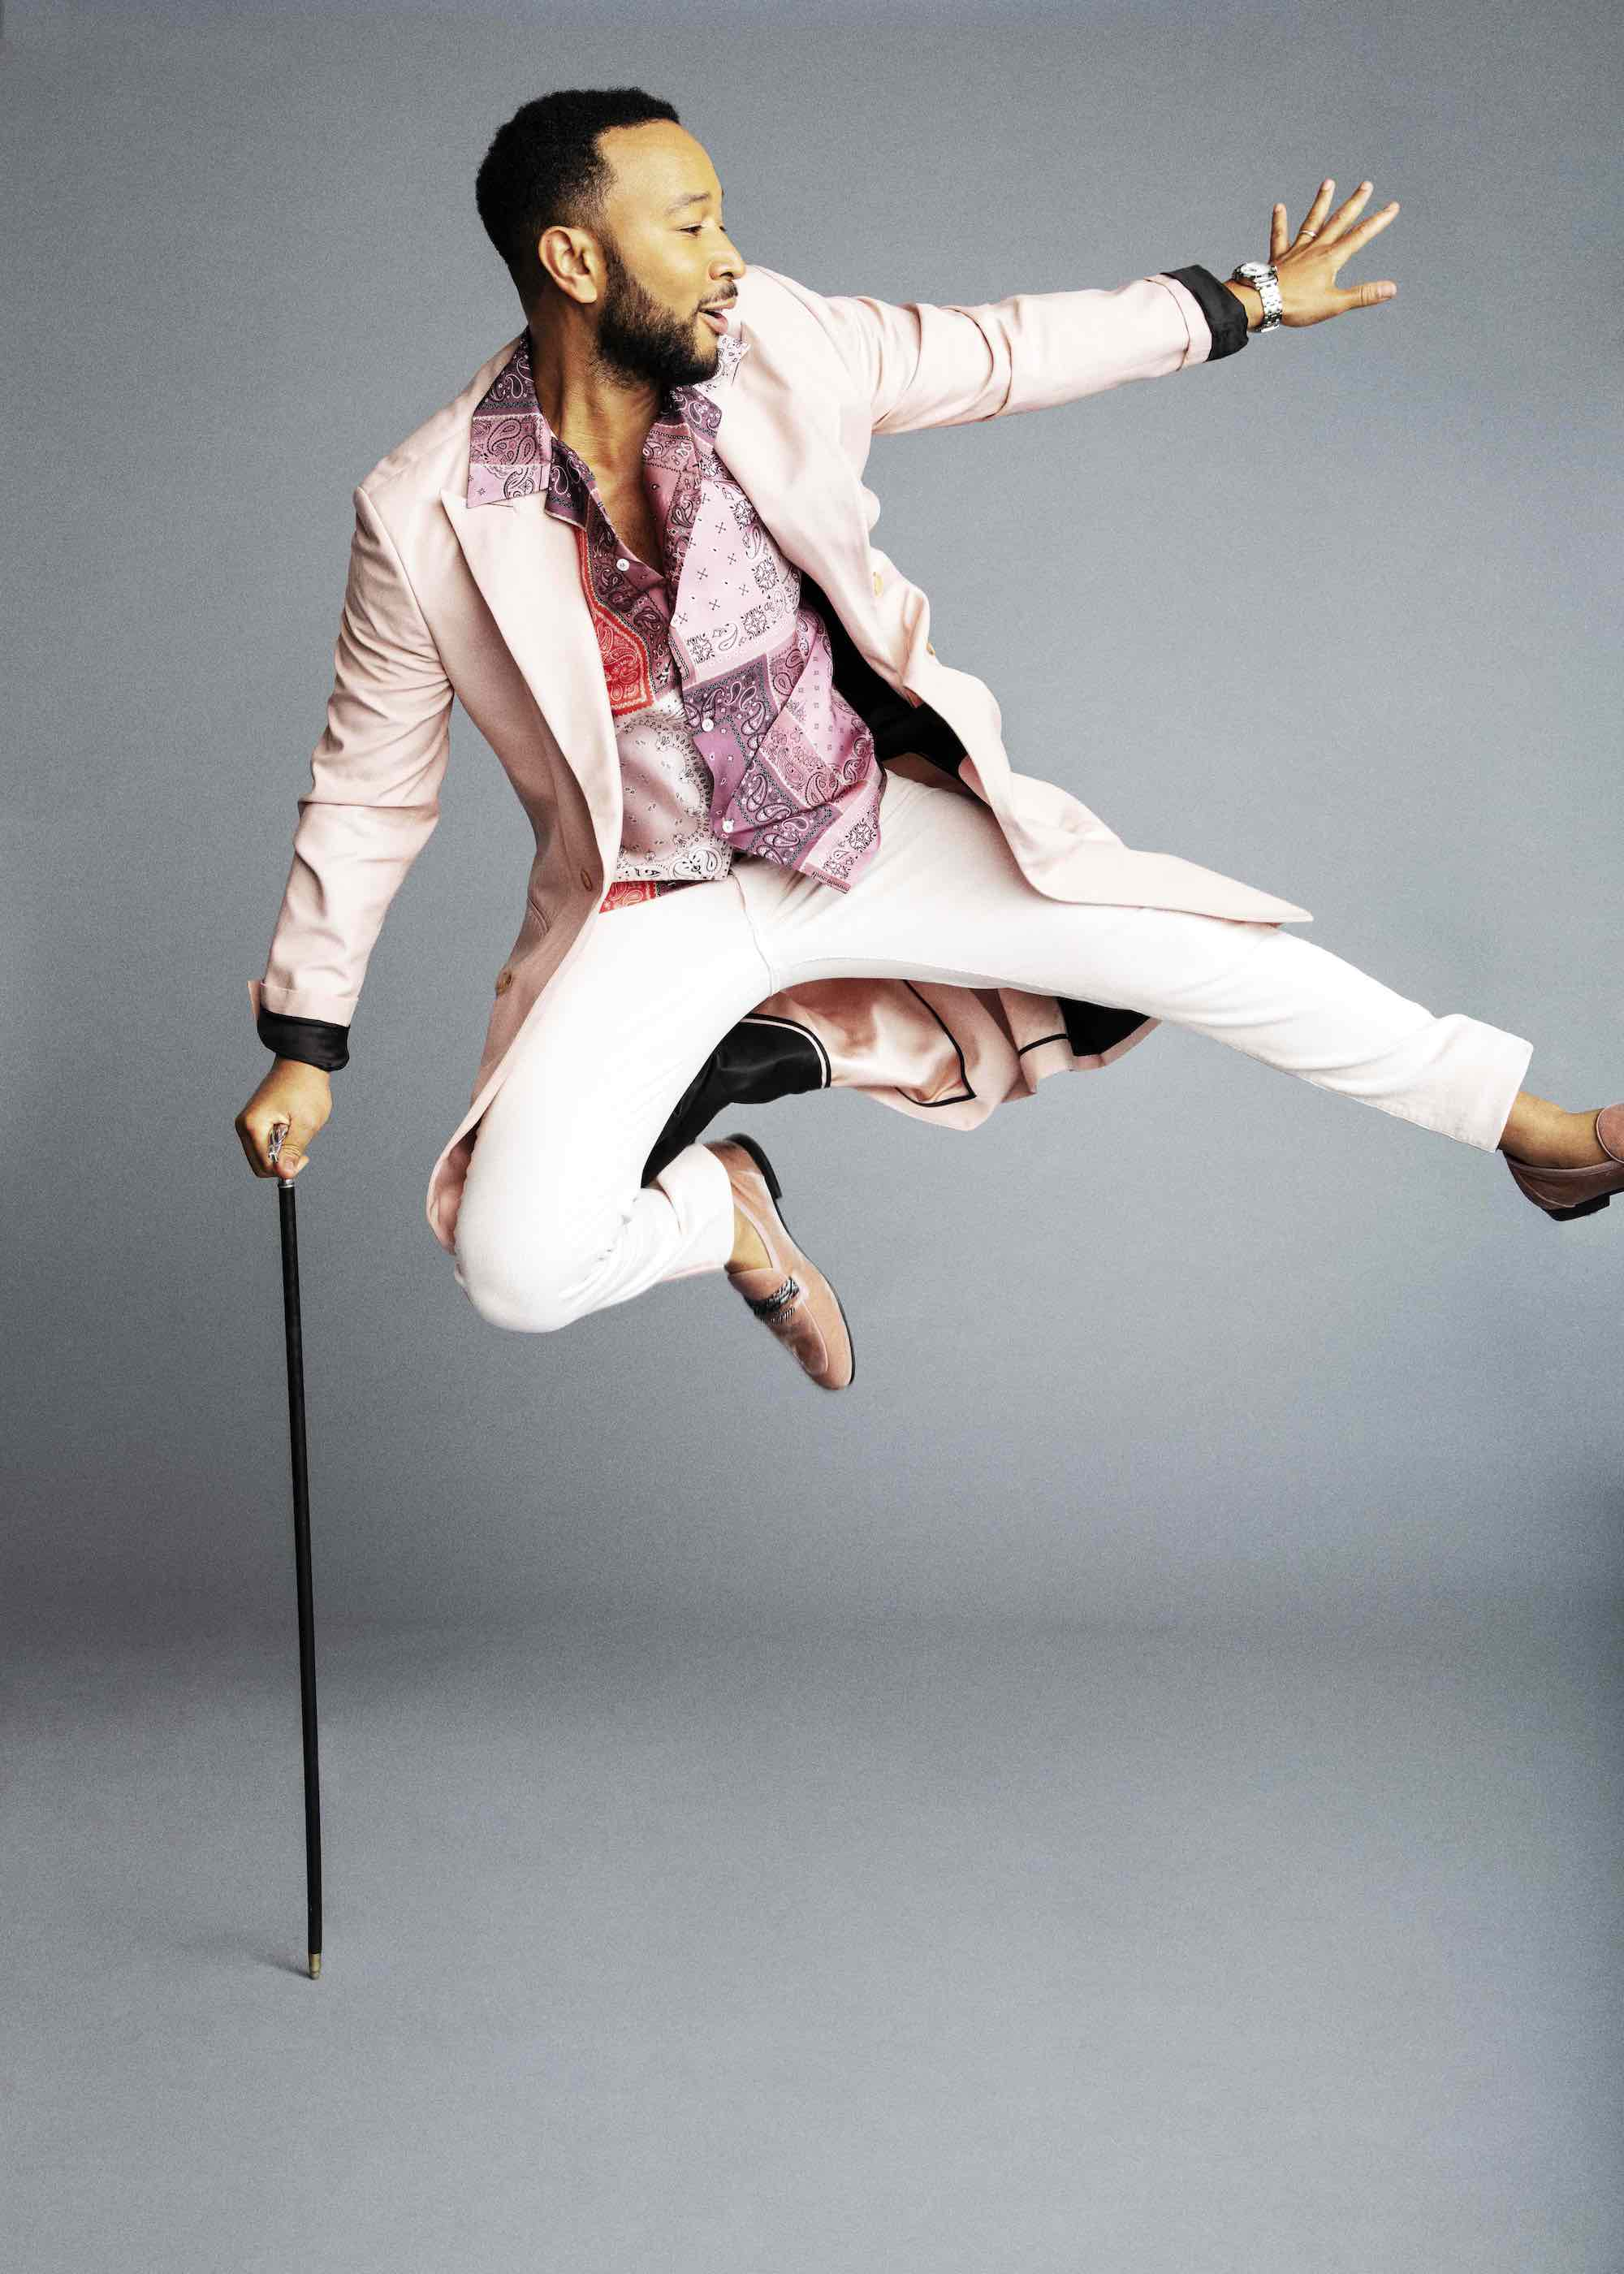 John Legend in a pink suit and cane jumping